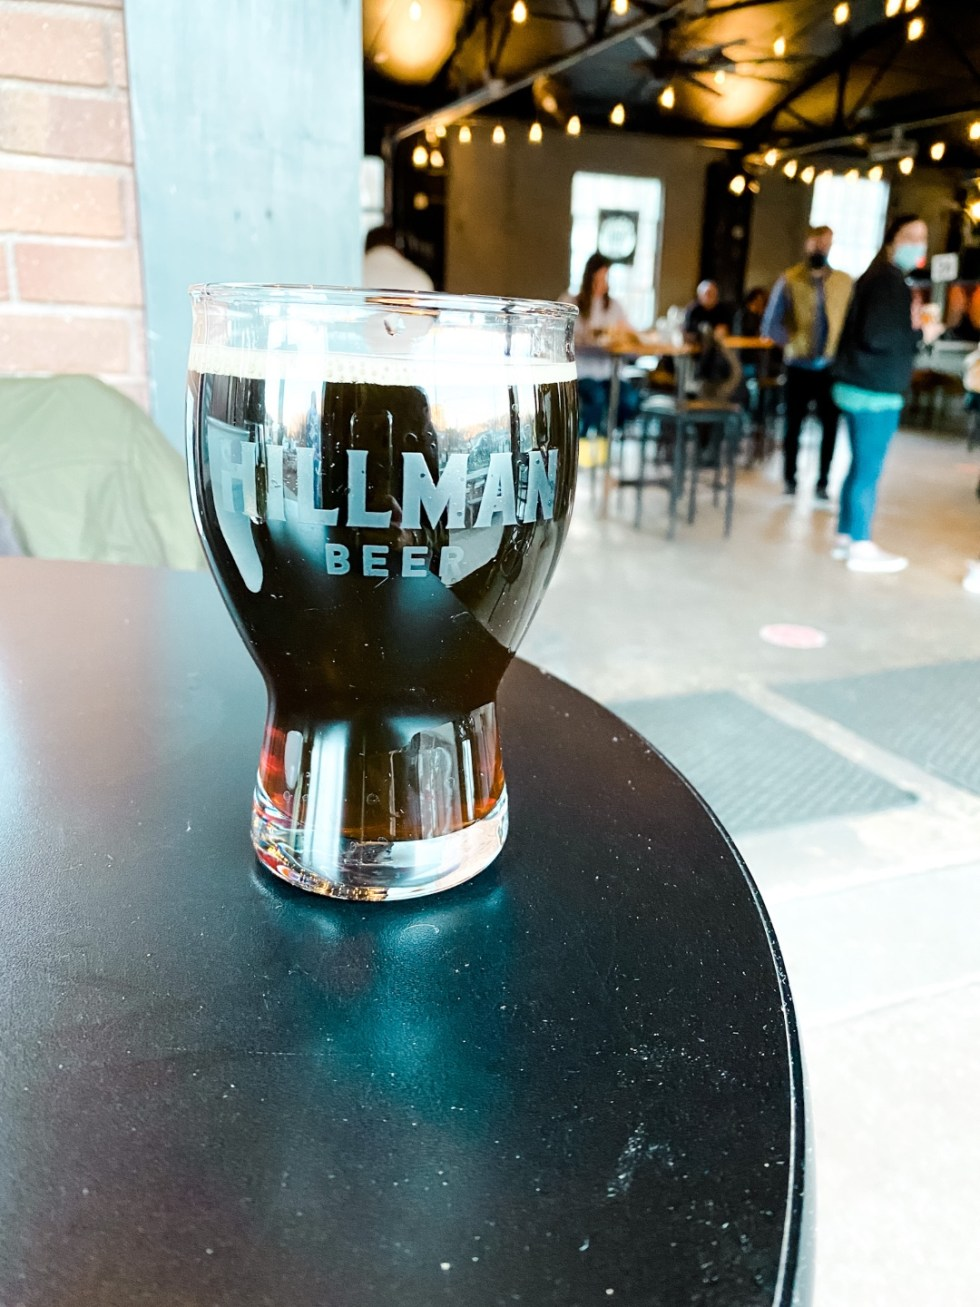 2021 Goal: Visiting All 100 Counties in NC - I'm Fixin' To - @imfixintoblog |Counties in NC by popular NC blog, I'm Fixin' To: image of a glass of Hillman beer.